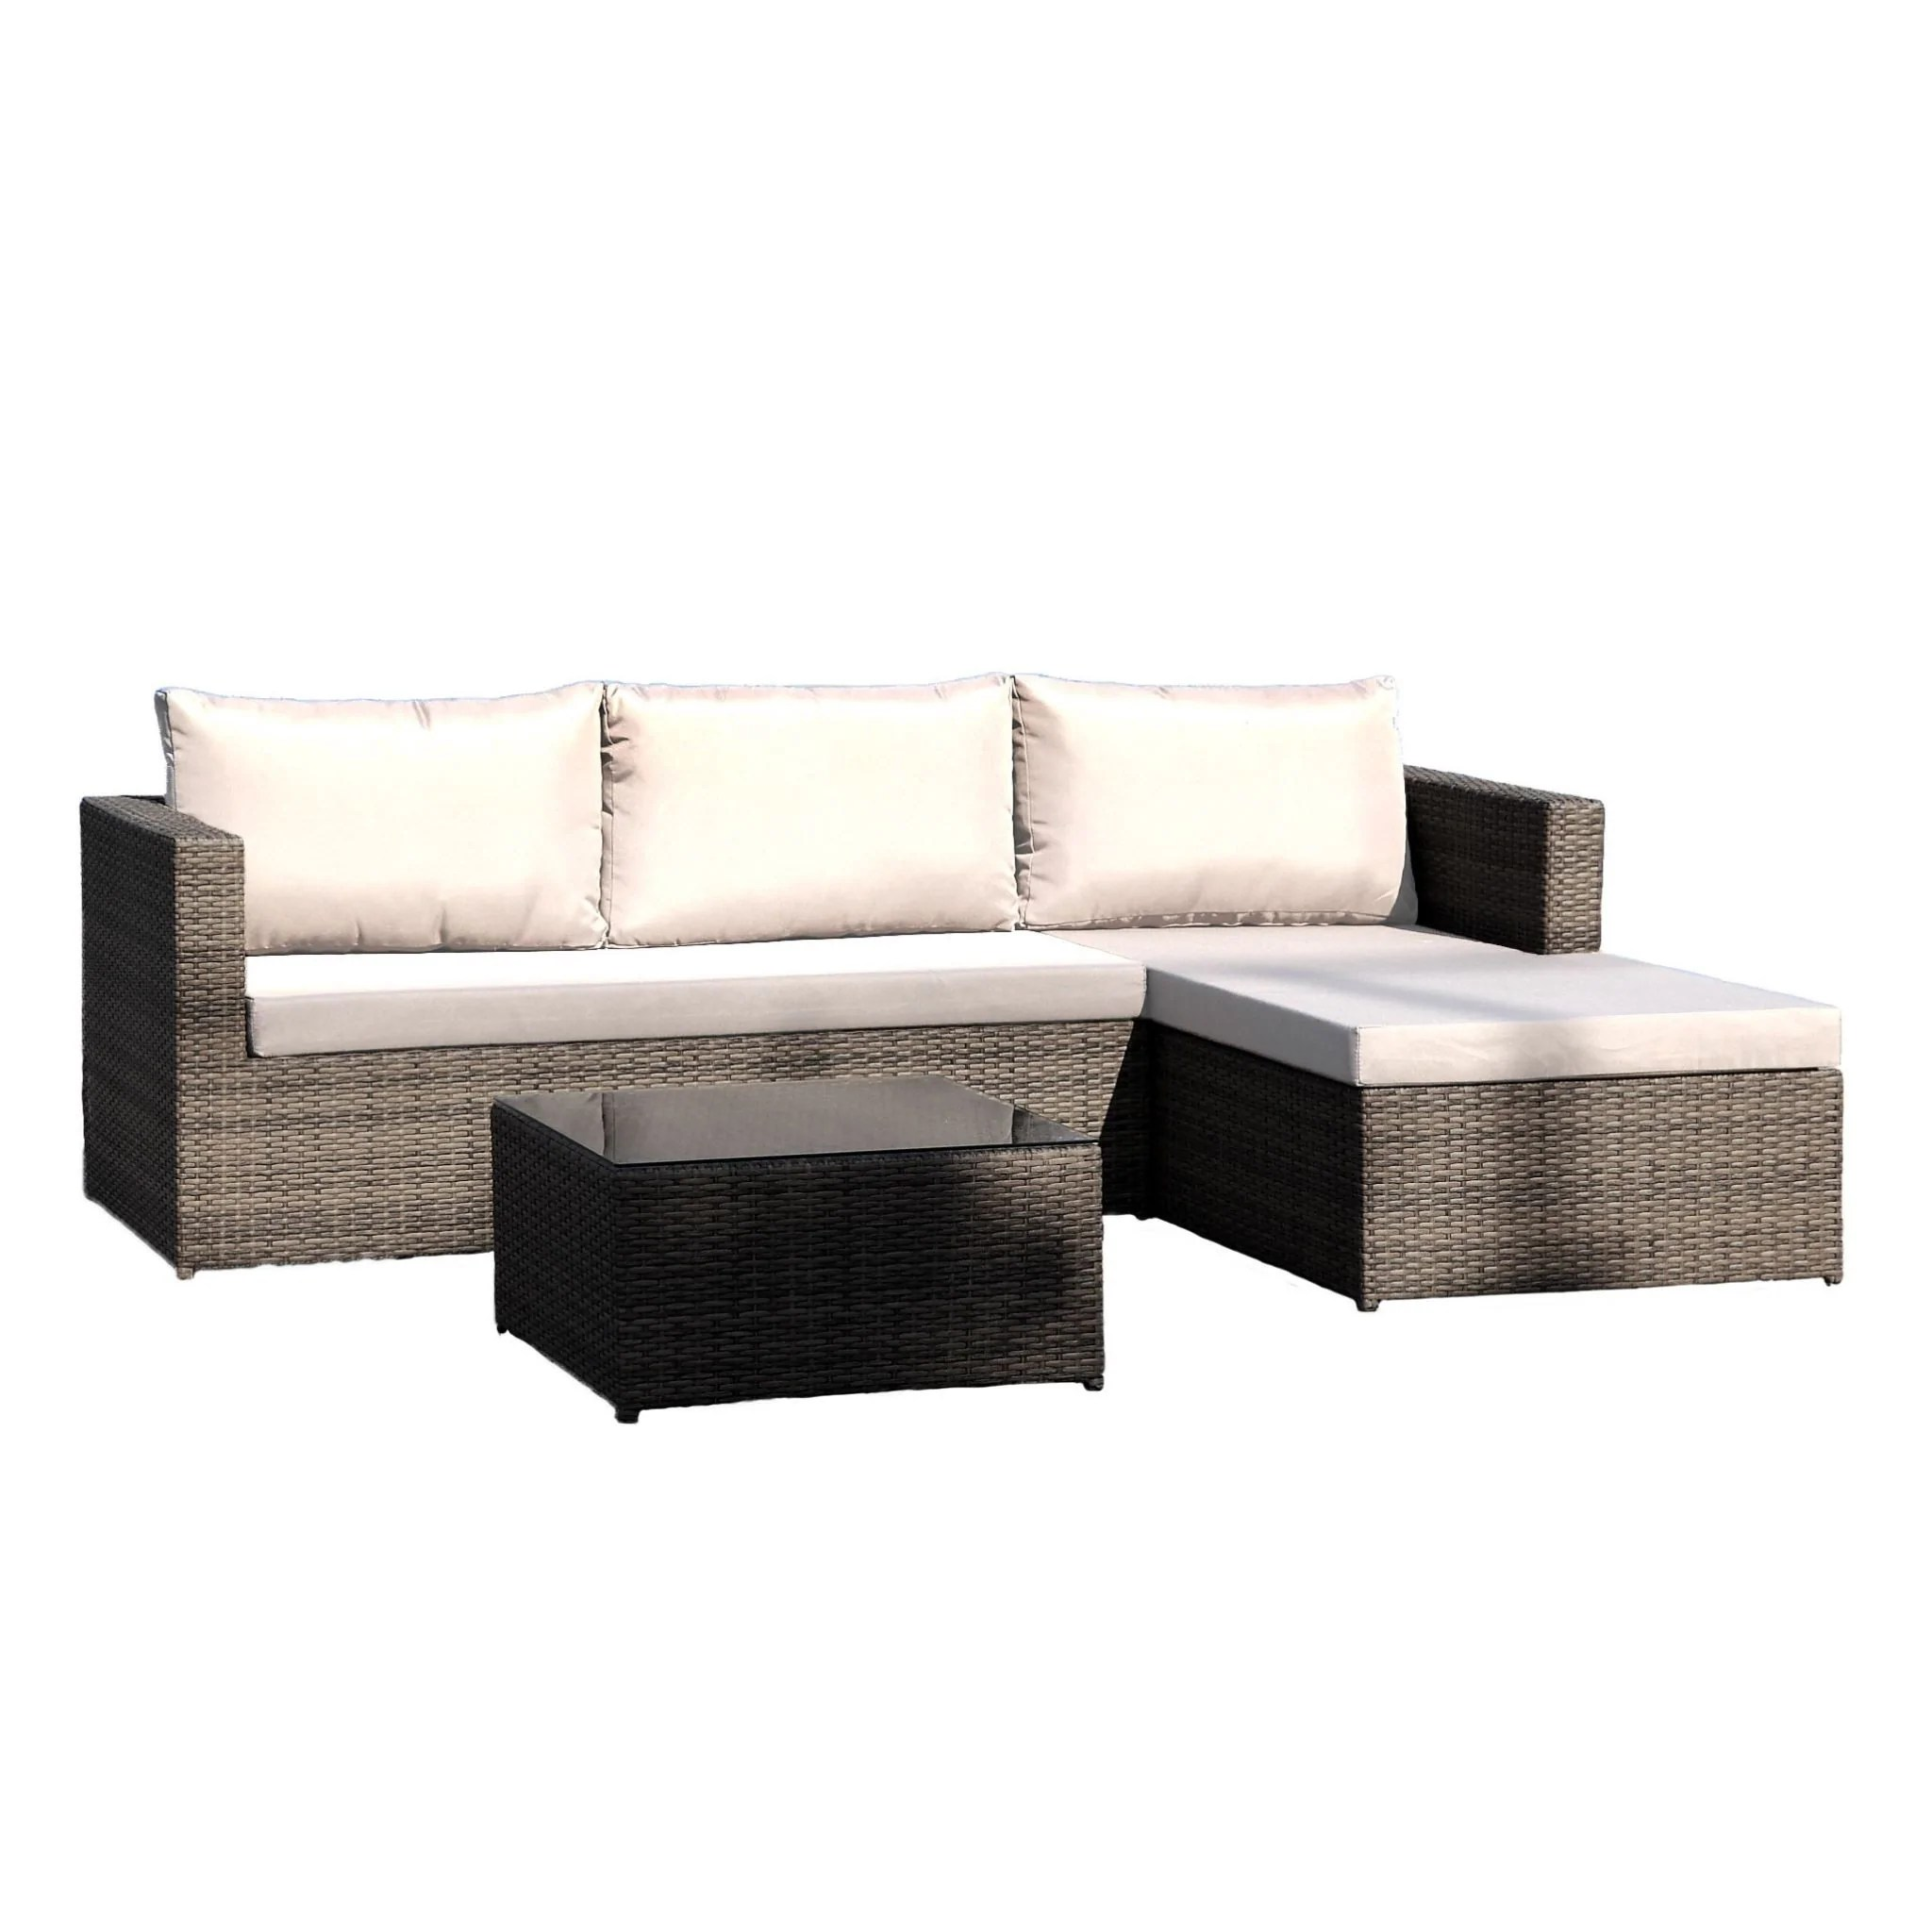 Rattan 3 Piece Sofa Hospitality Rattan Sapphire 3 Pc Sofa Sectional Set Grey 1473 Gry 3pc Set